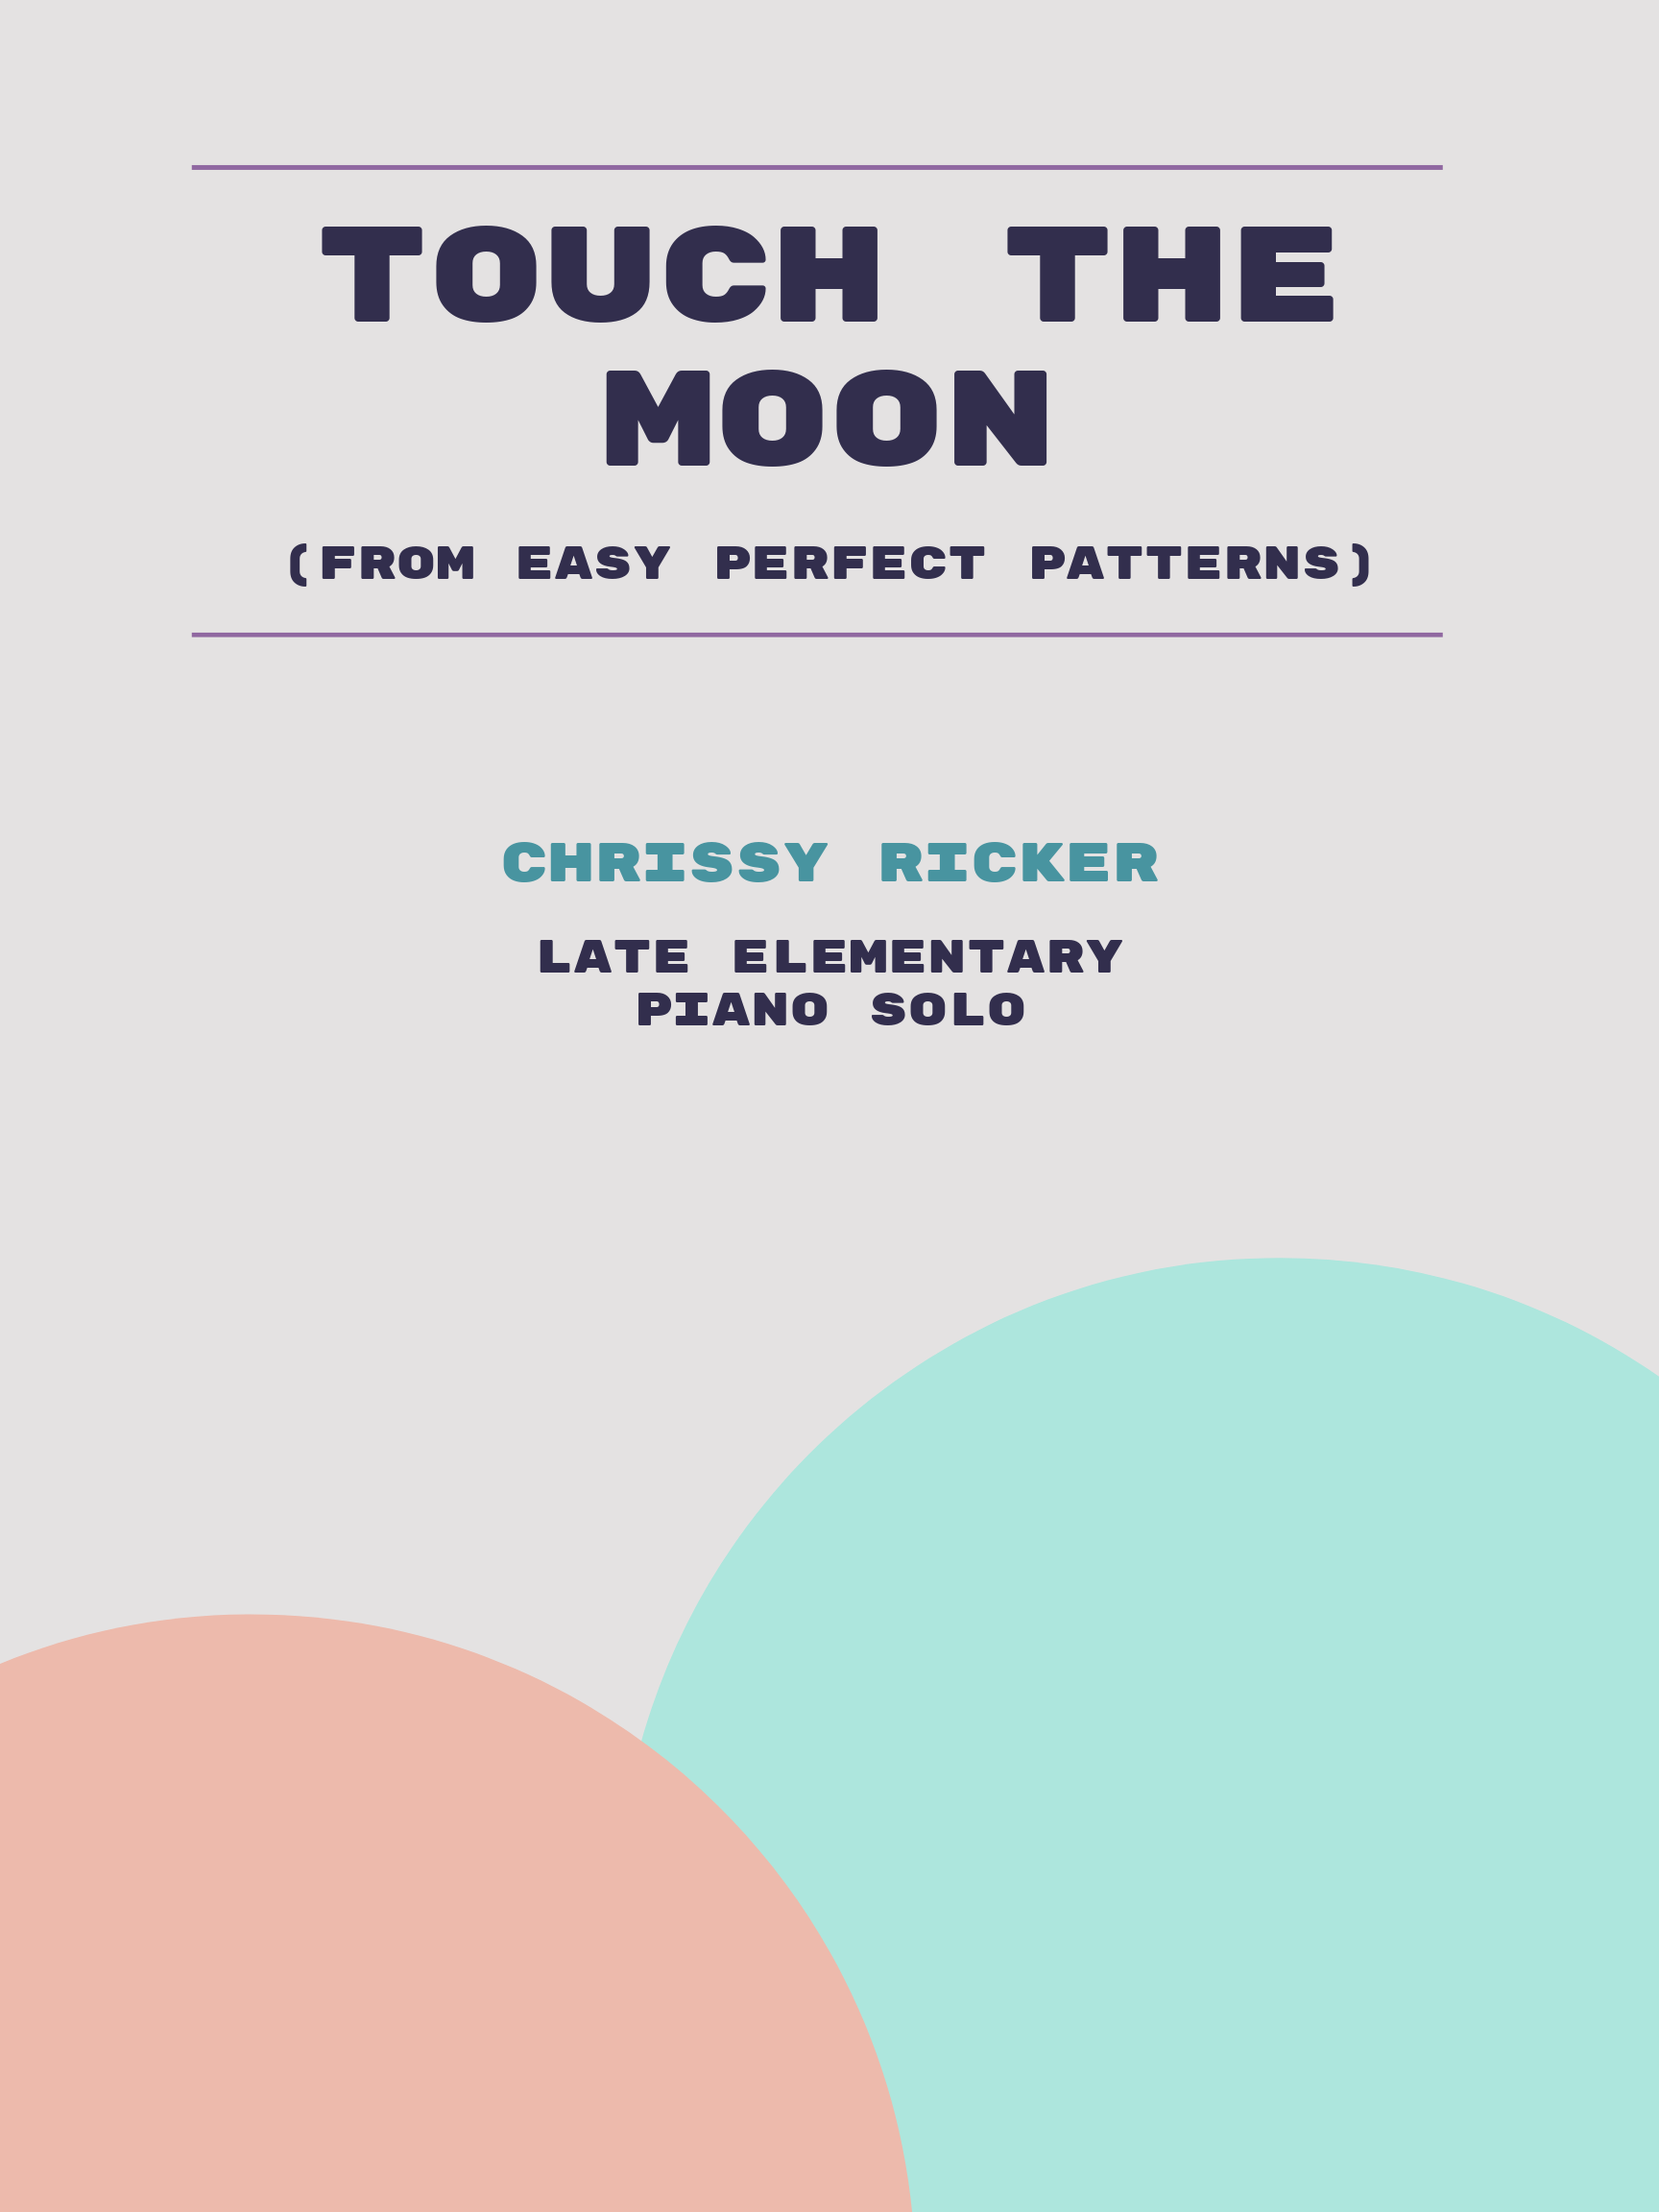 Touch the Moon by Chrissy Ricker